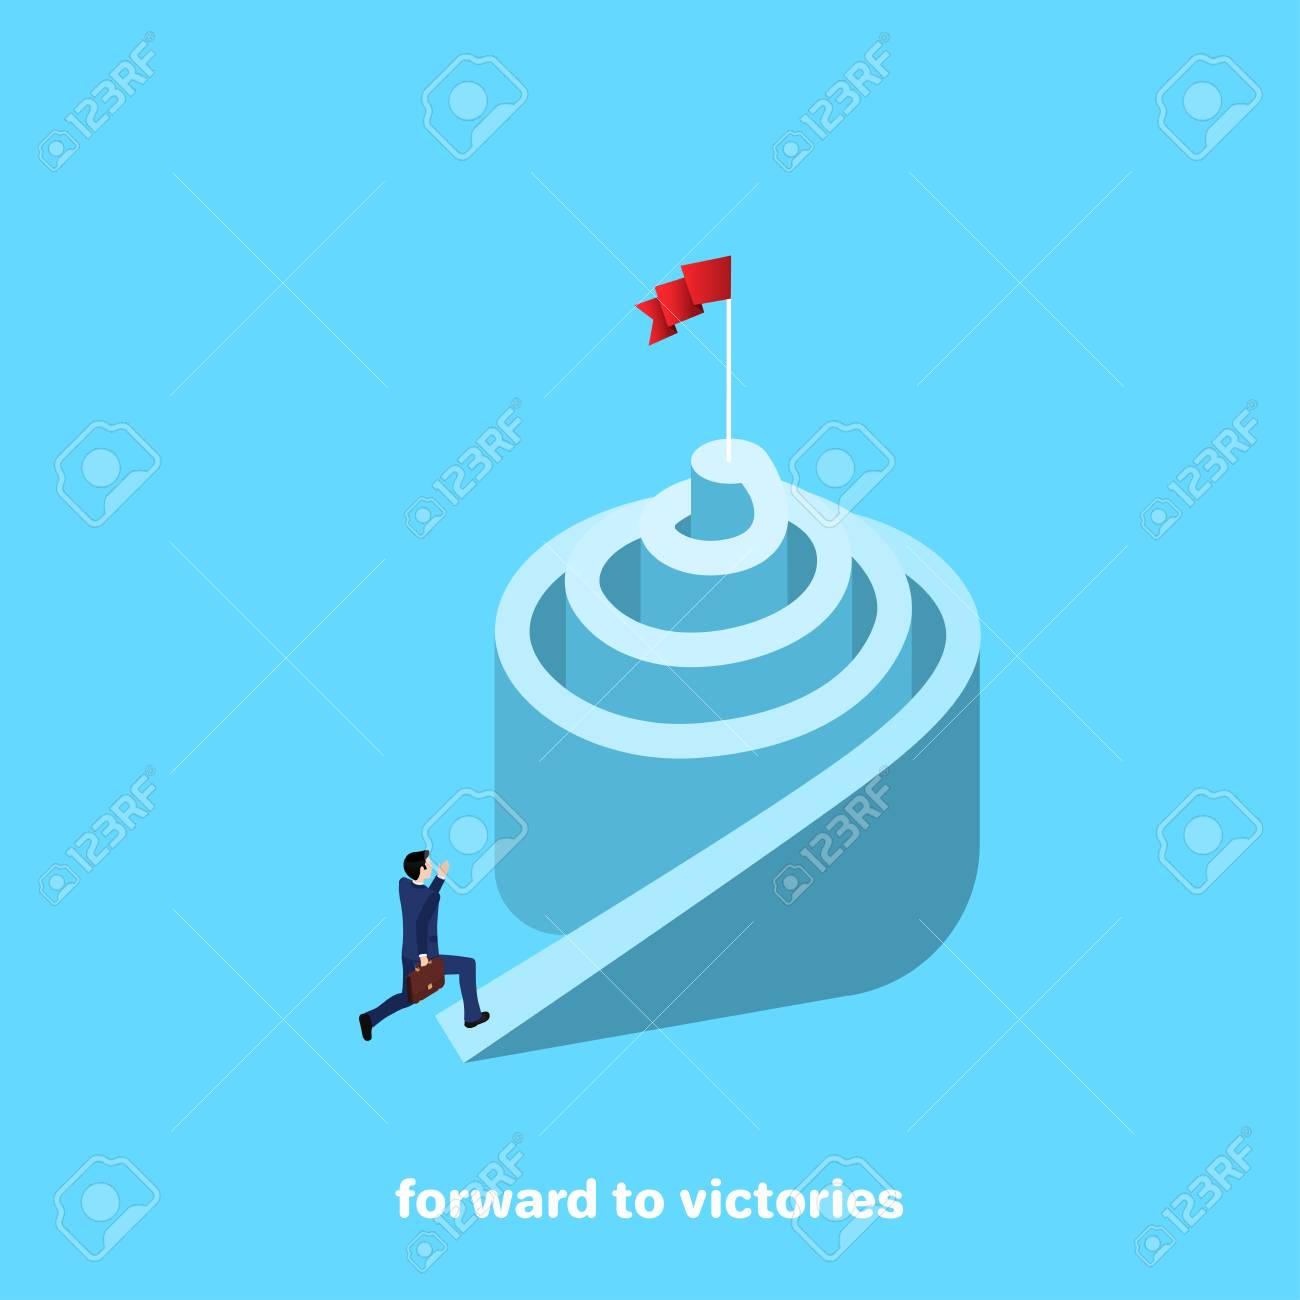 A Man In A Business Suit Is Running Up A Spiral An Isometric